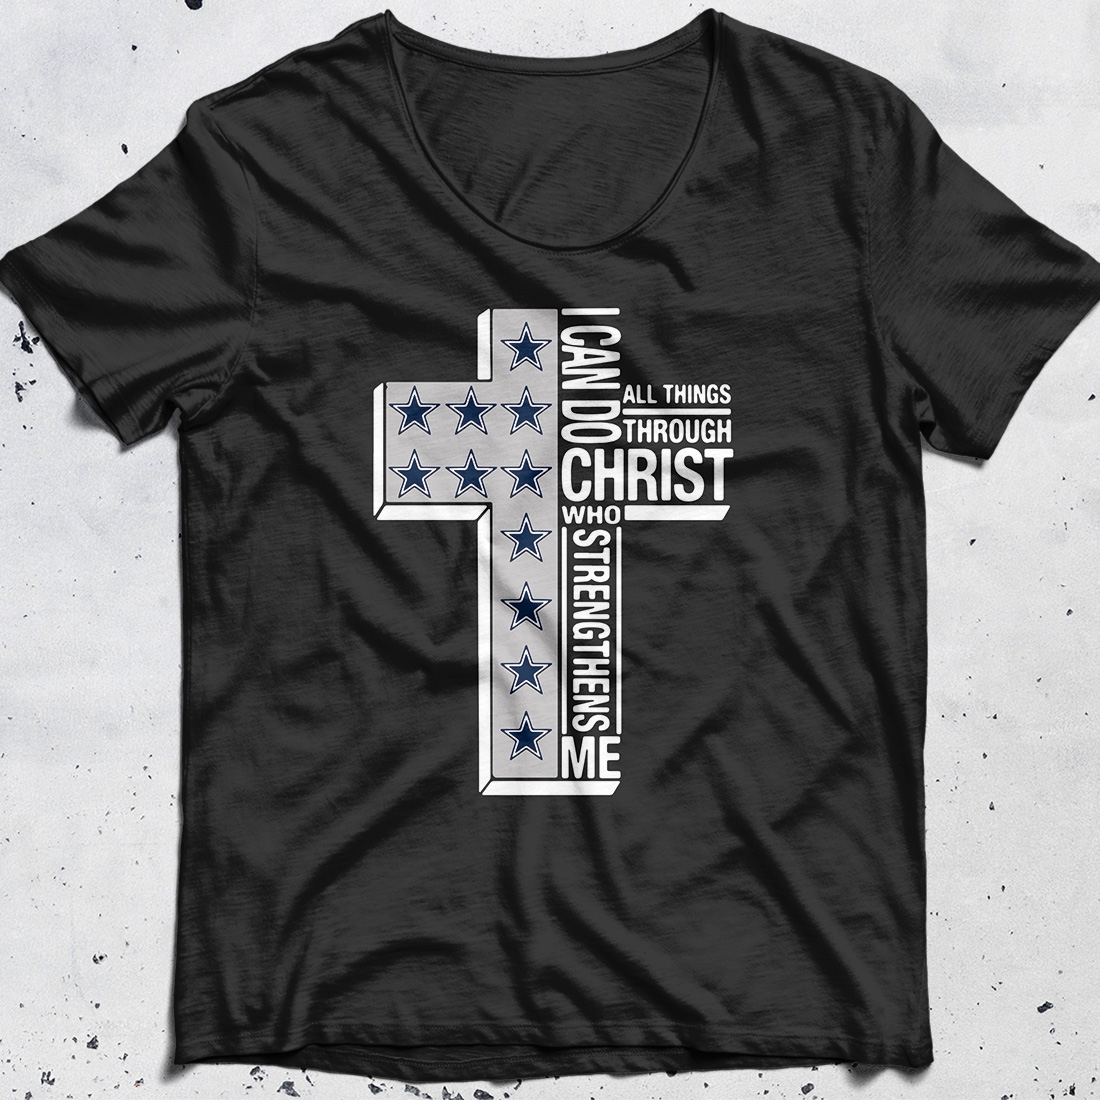 Dallas Cowboys I can do all things through Christ who strengthens me cross shirt